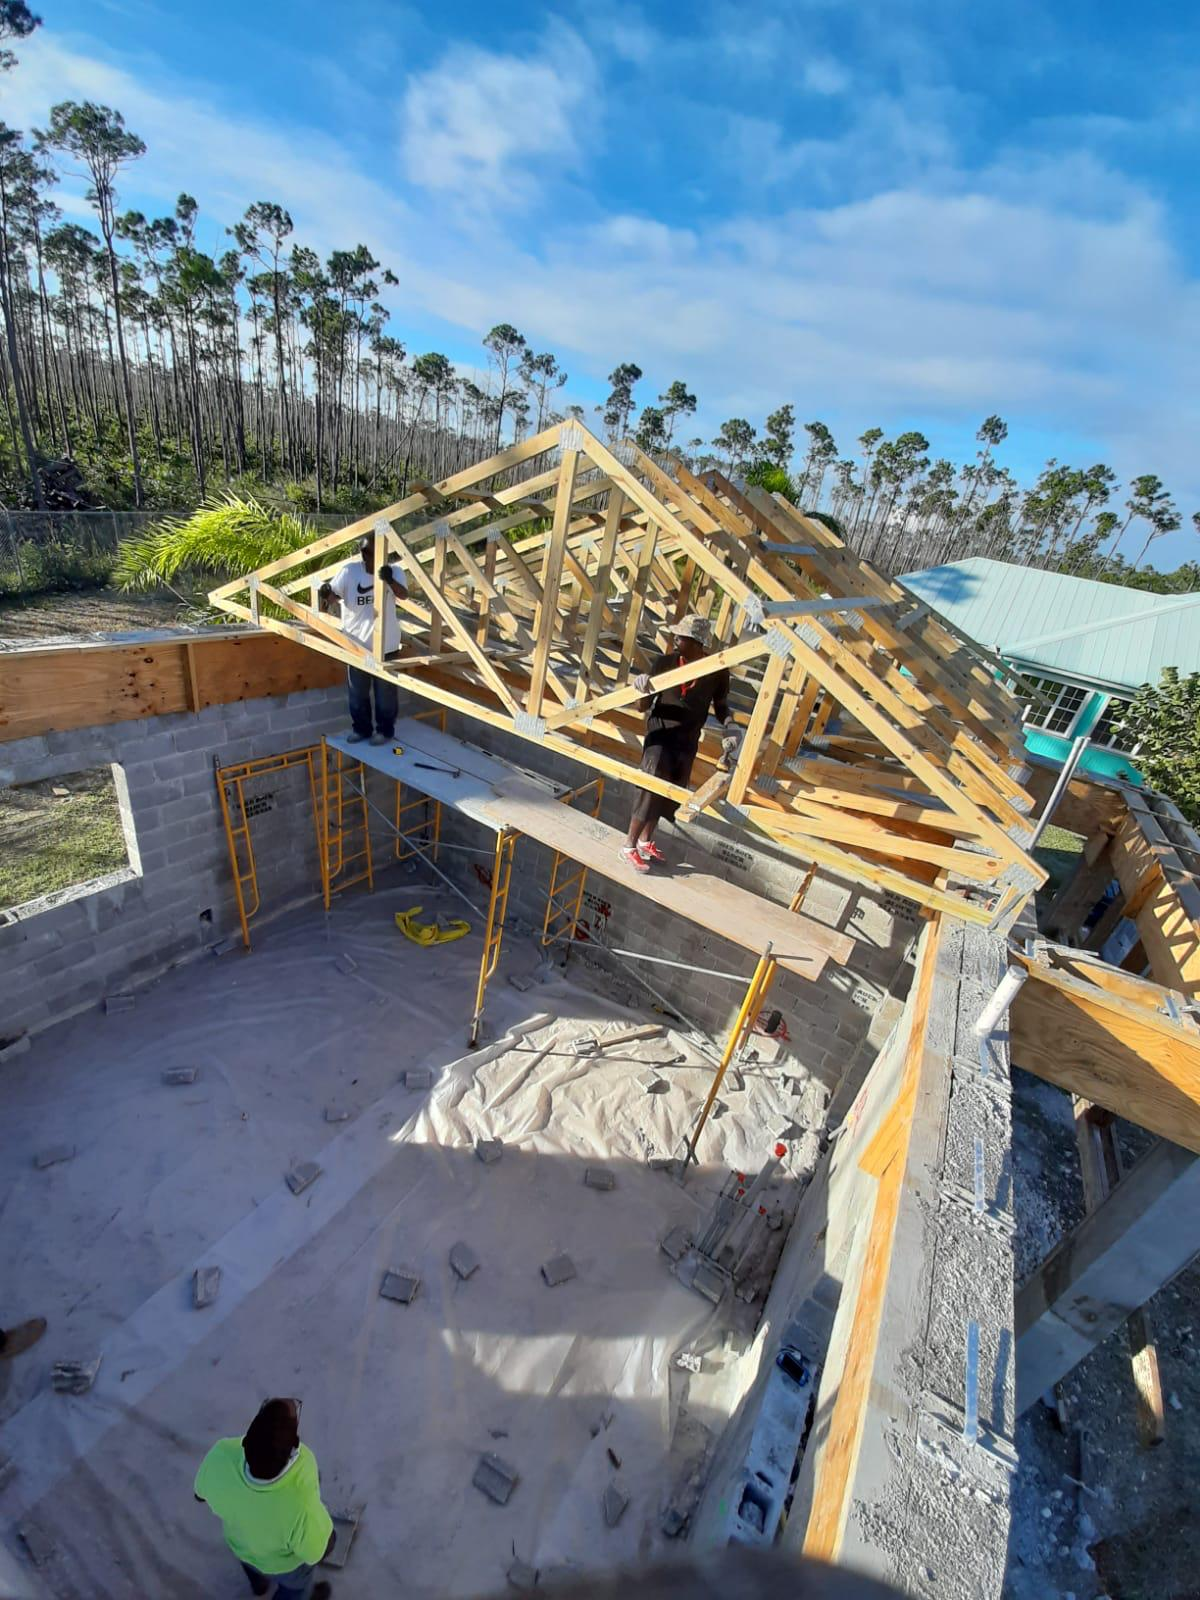 Grand Bahama Children's Home bolstered by donor group